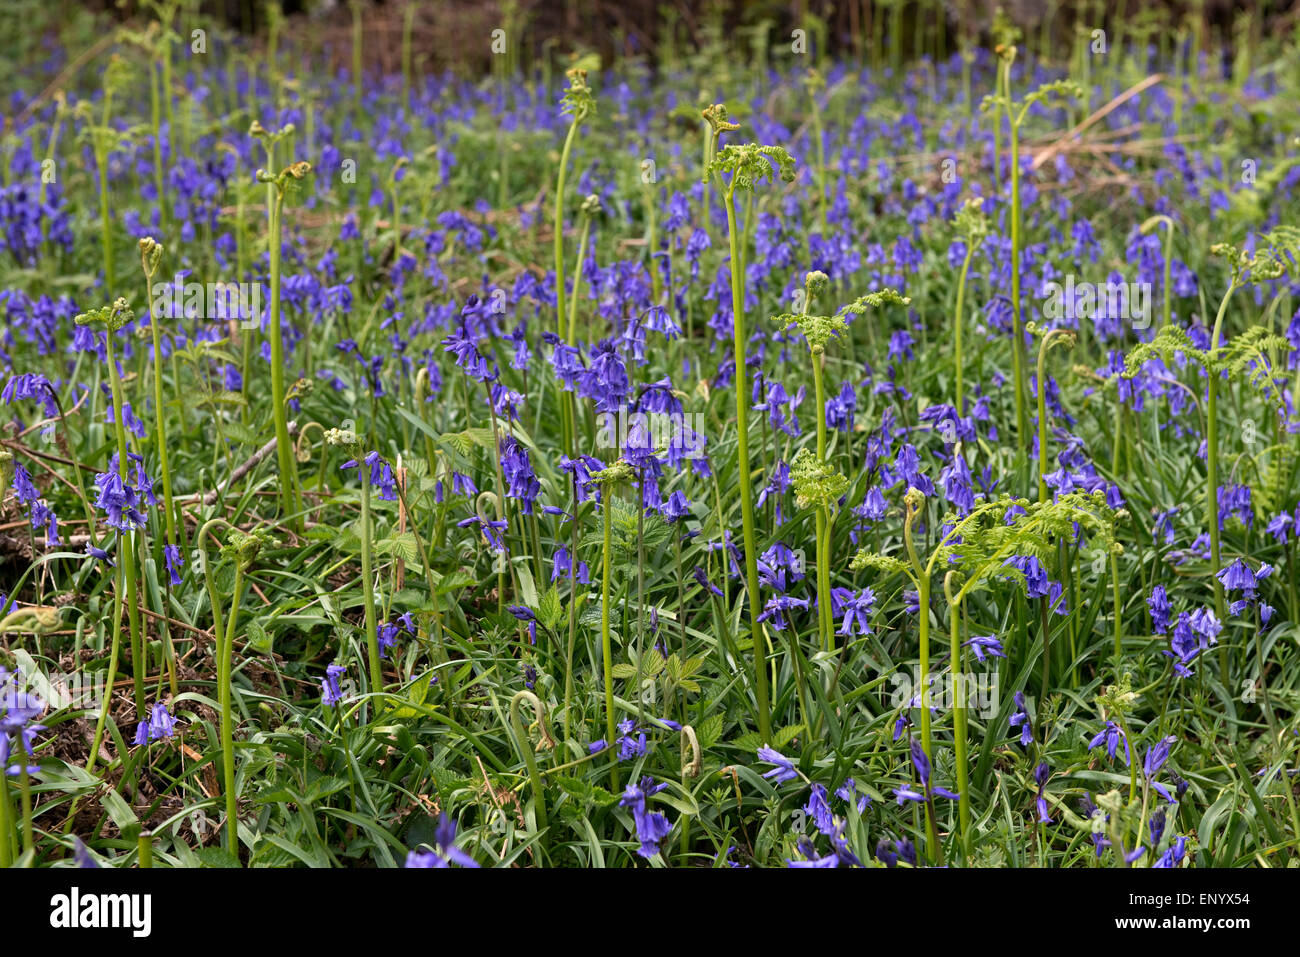 Bluebells in flower with shoots of young bracken in a spring woodland, Berkshire, April - Stock Image